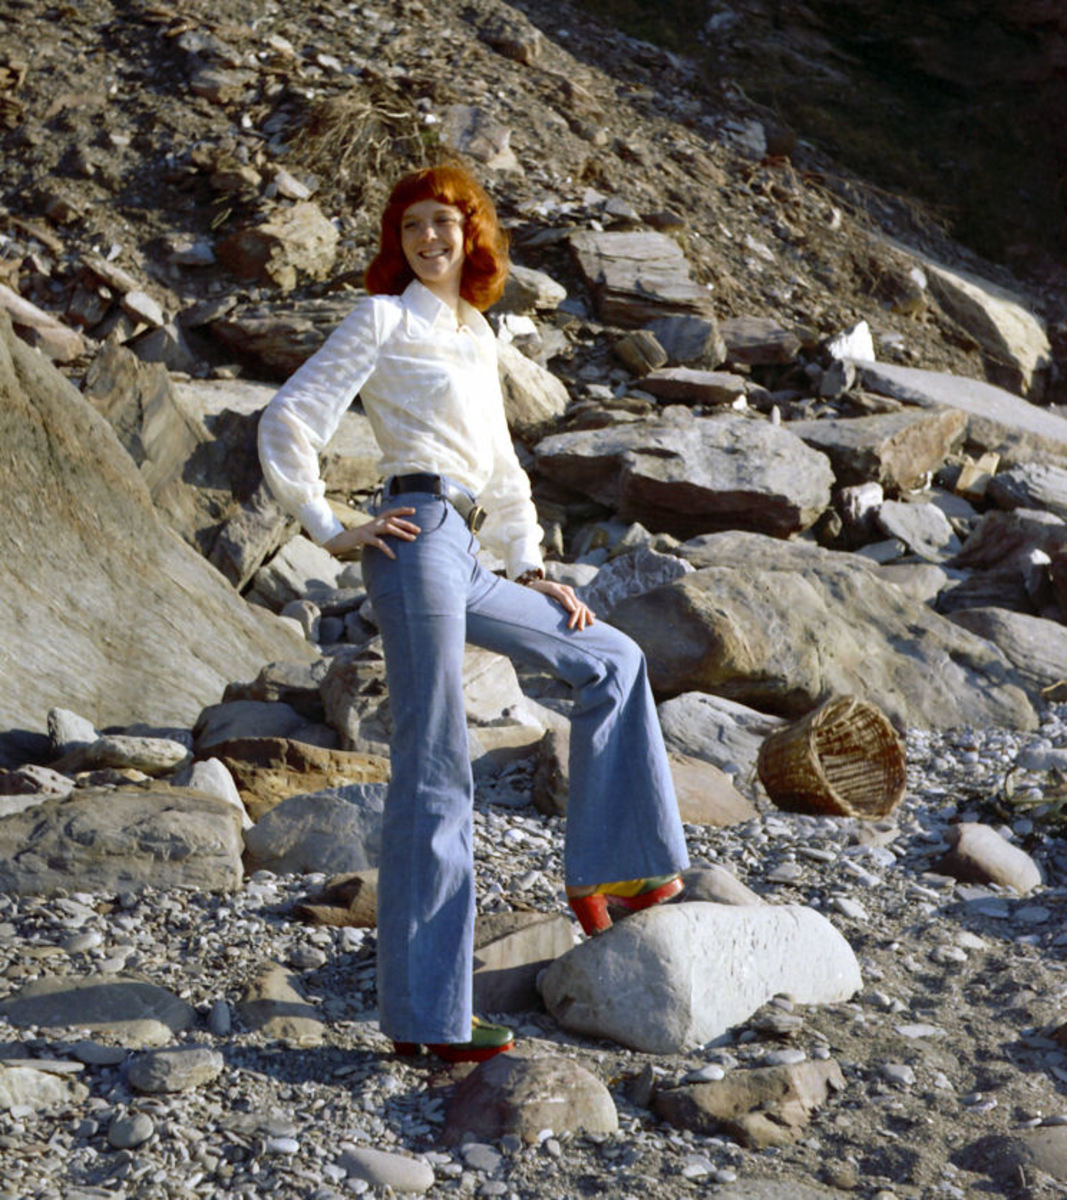 Jeans were popularized and evolved into sailor-style bell-bottoms.